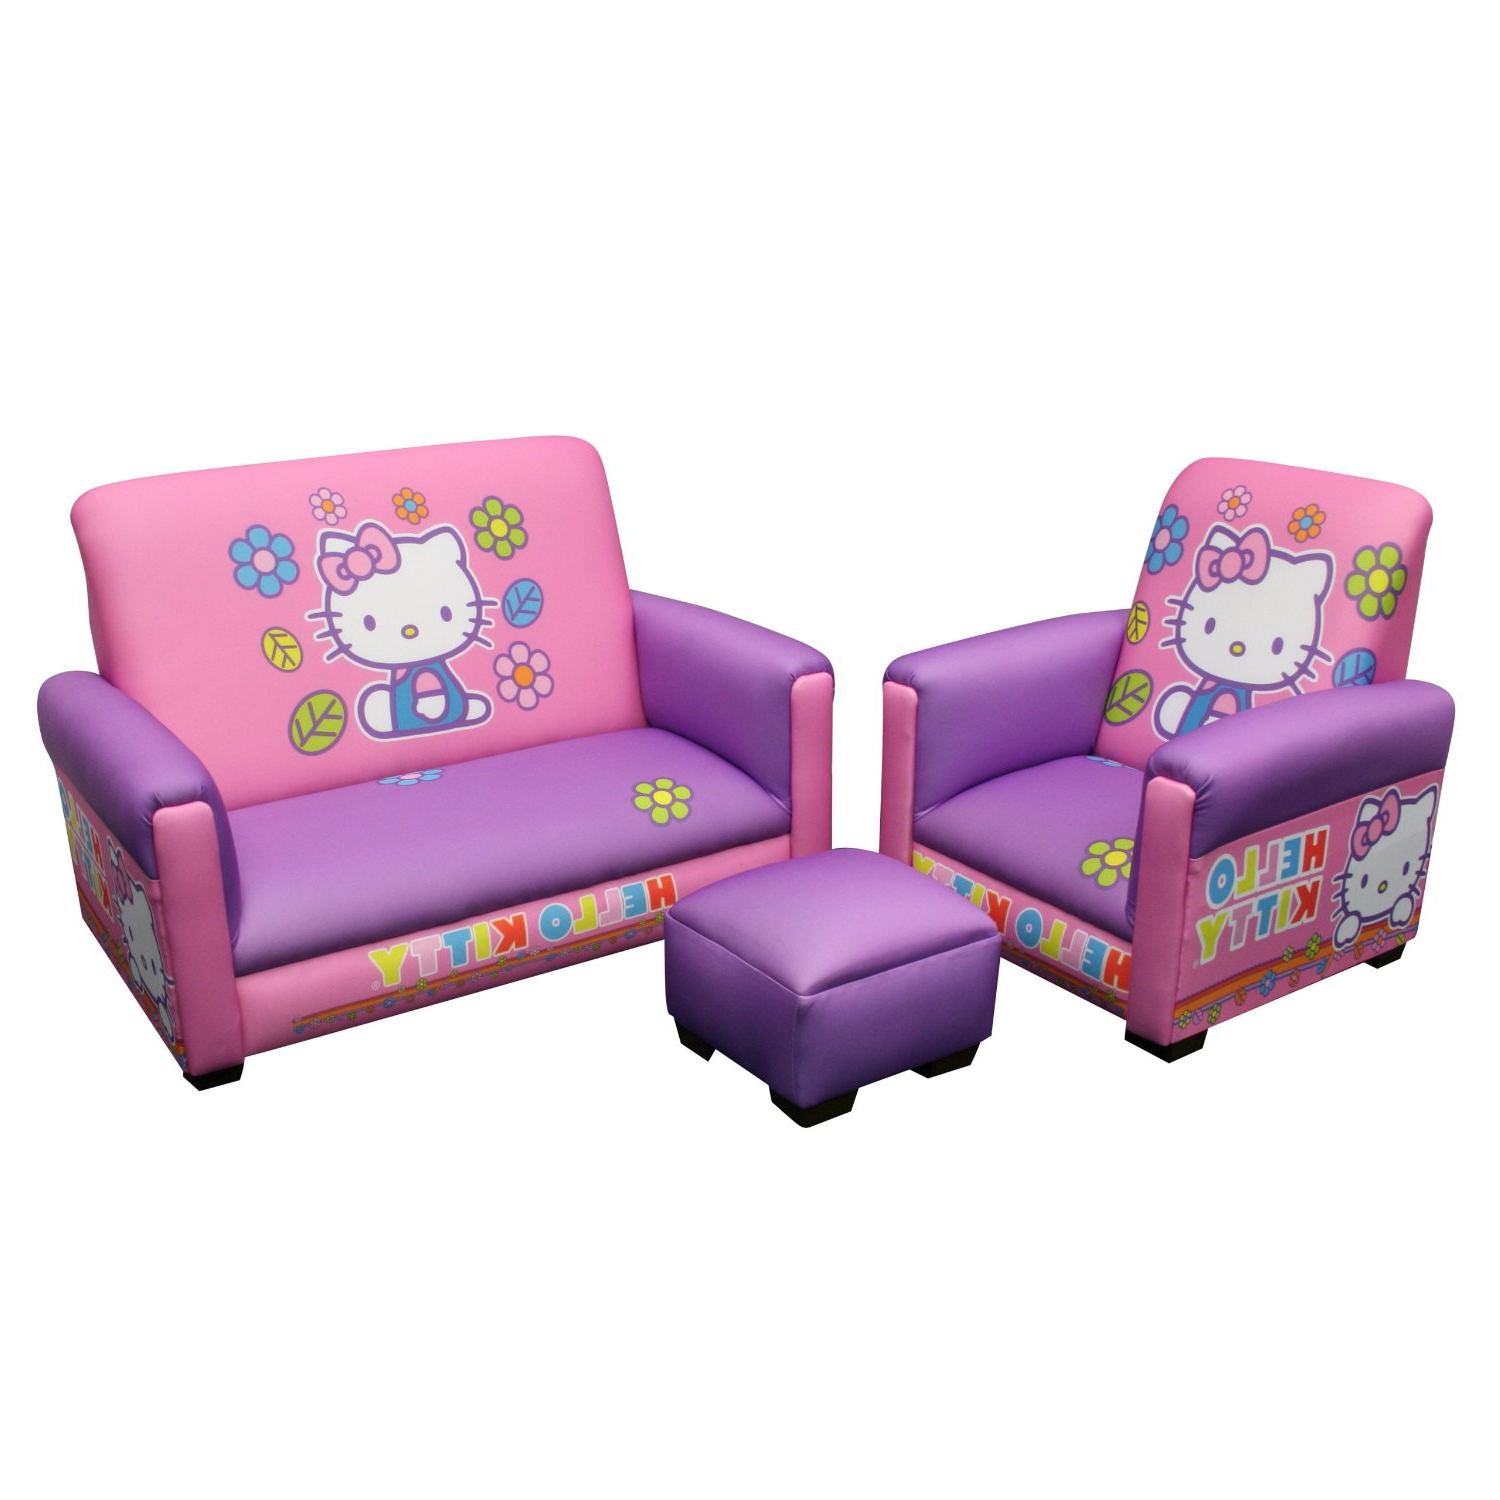 Decorating Where To Buy Kids Chairs Toddler Soft Furniture Toddler Regarding 2019 Toddler Sofa Chairs (View 5 of 20)